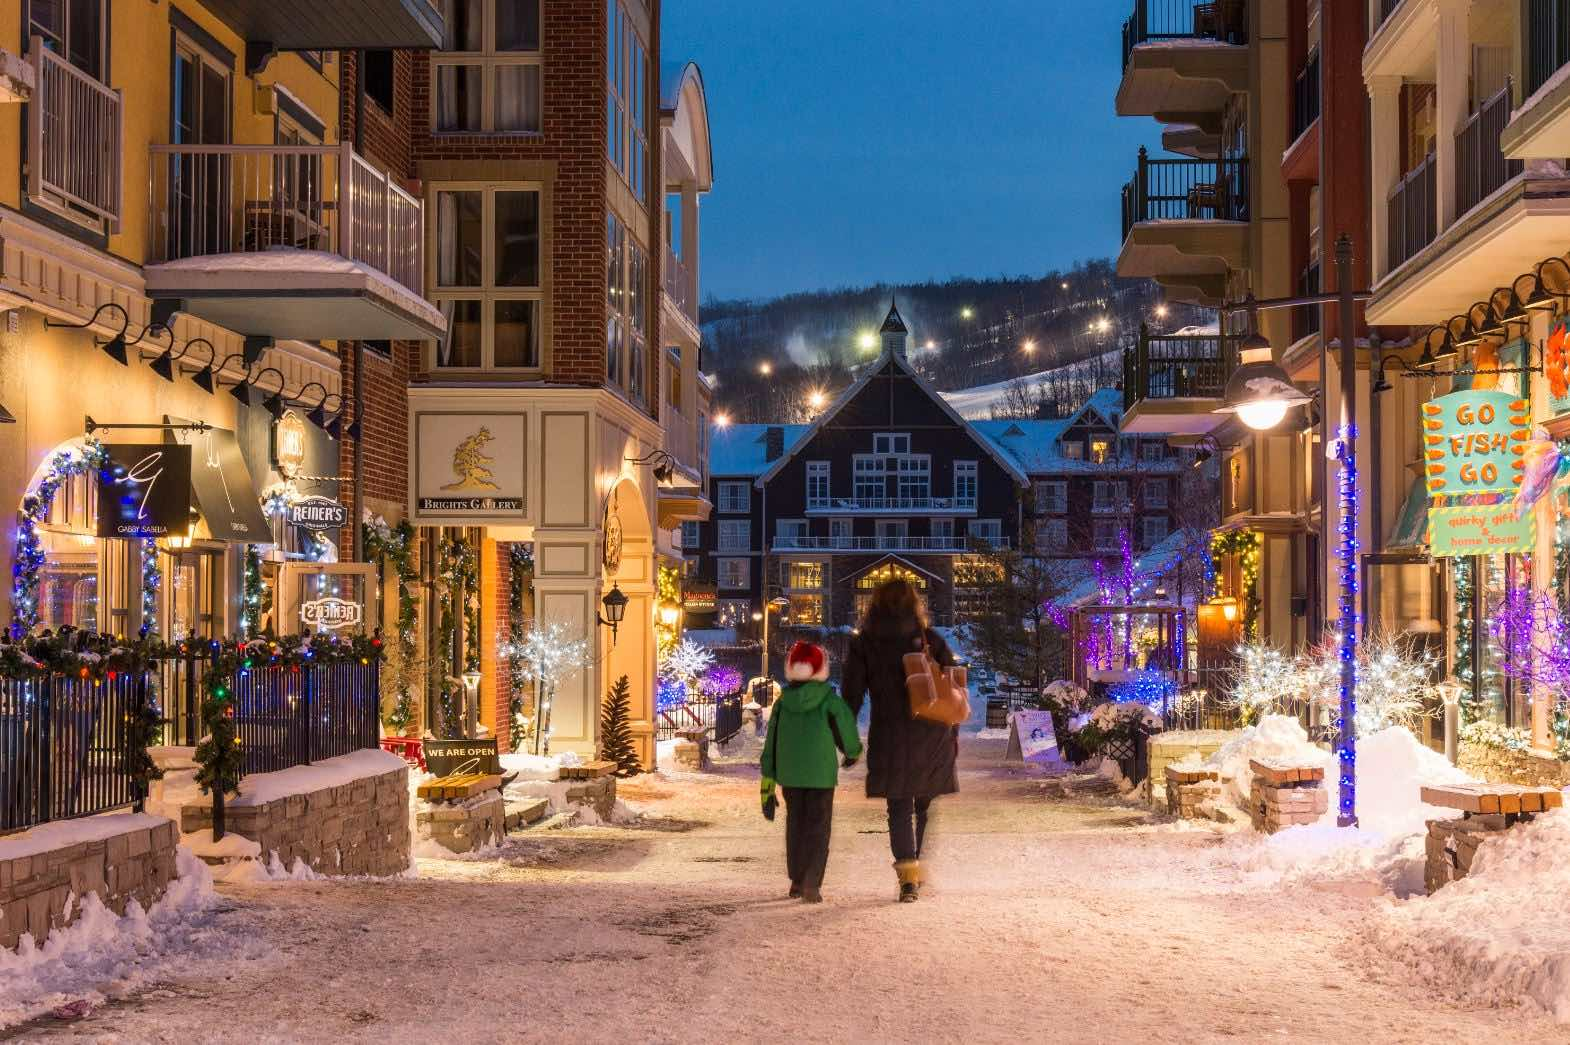 Things to do in Blue Mountain Village include walking its lanes in winter with your kids